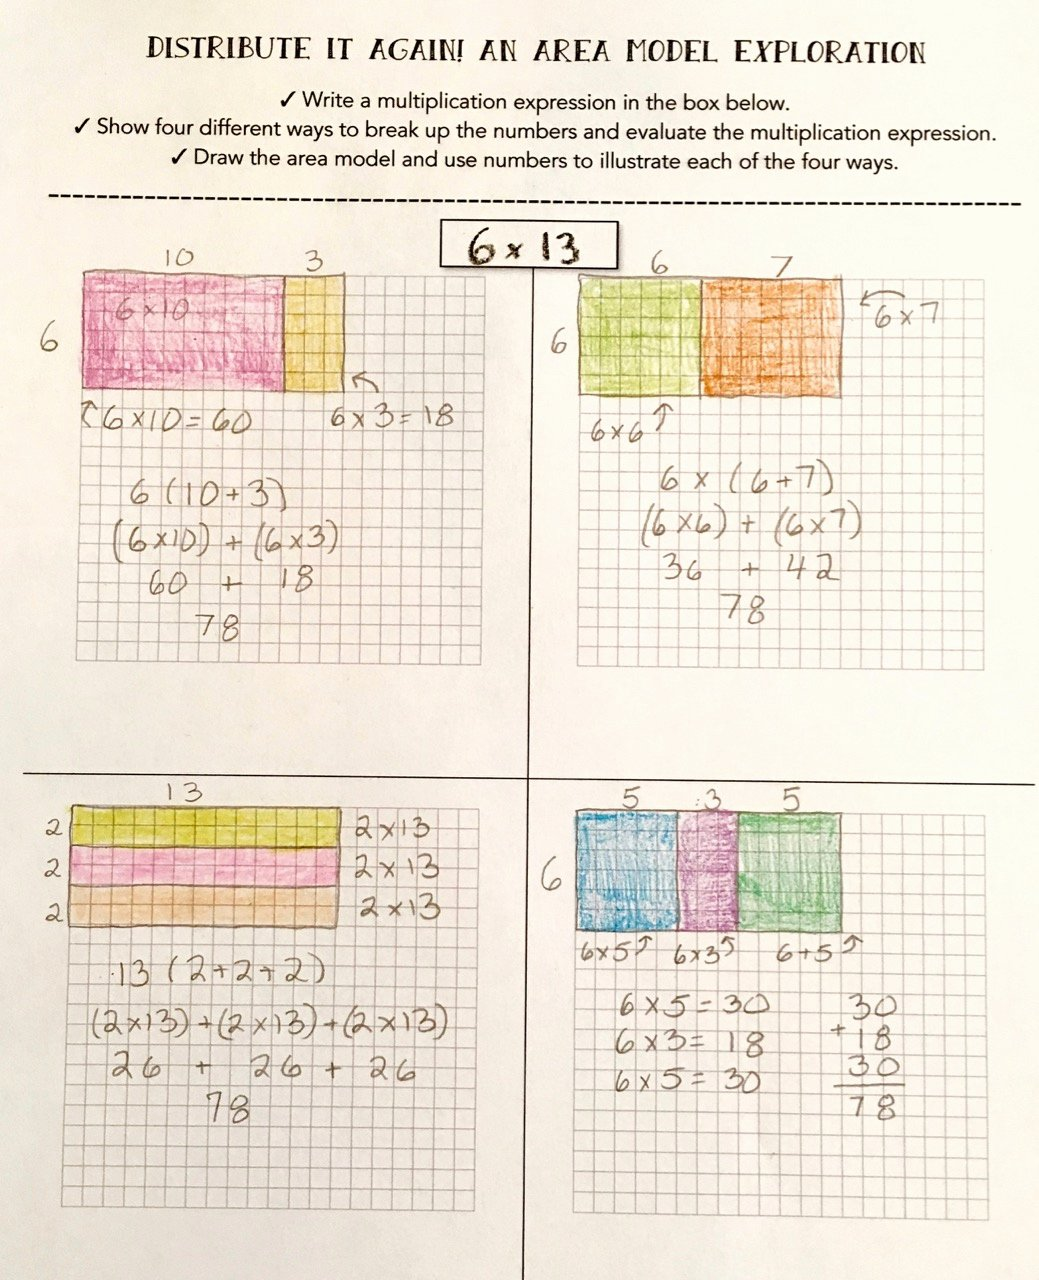 Distributive Property Of Multiplication Worksheets 3rd Grade top Teaching Multiplication with the Distributive Property